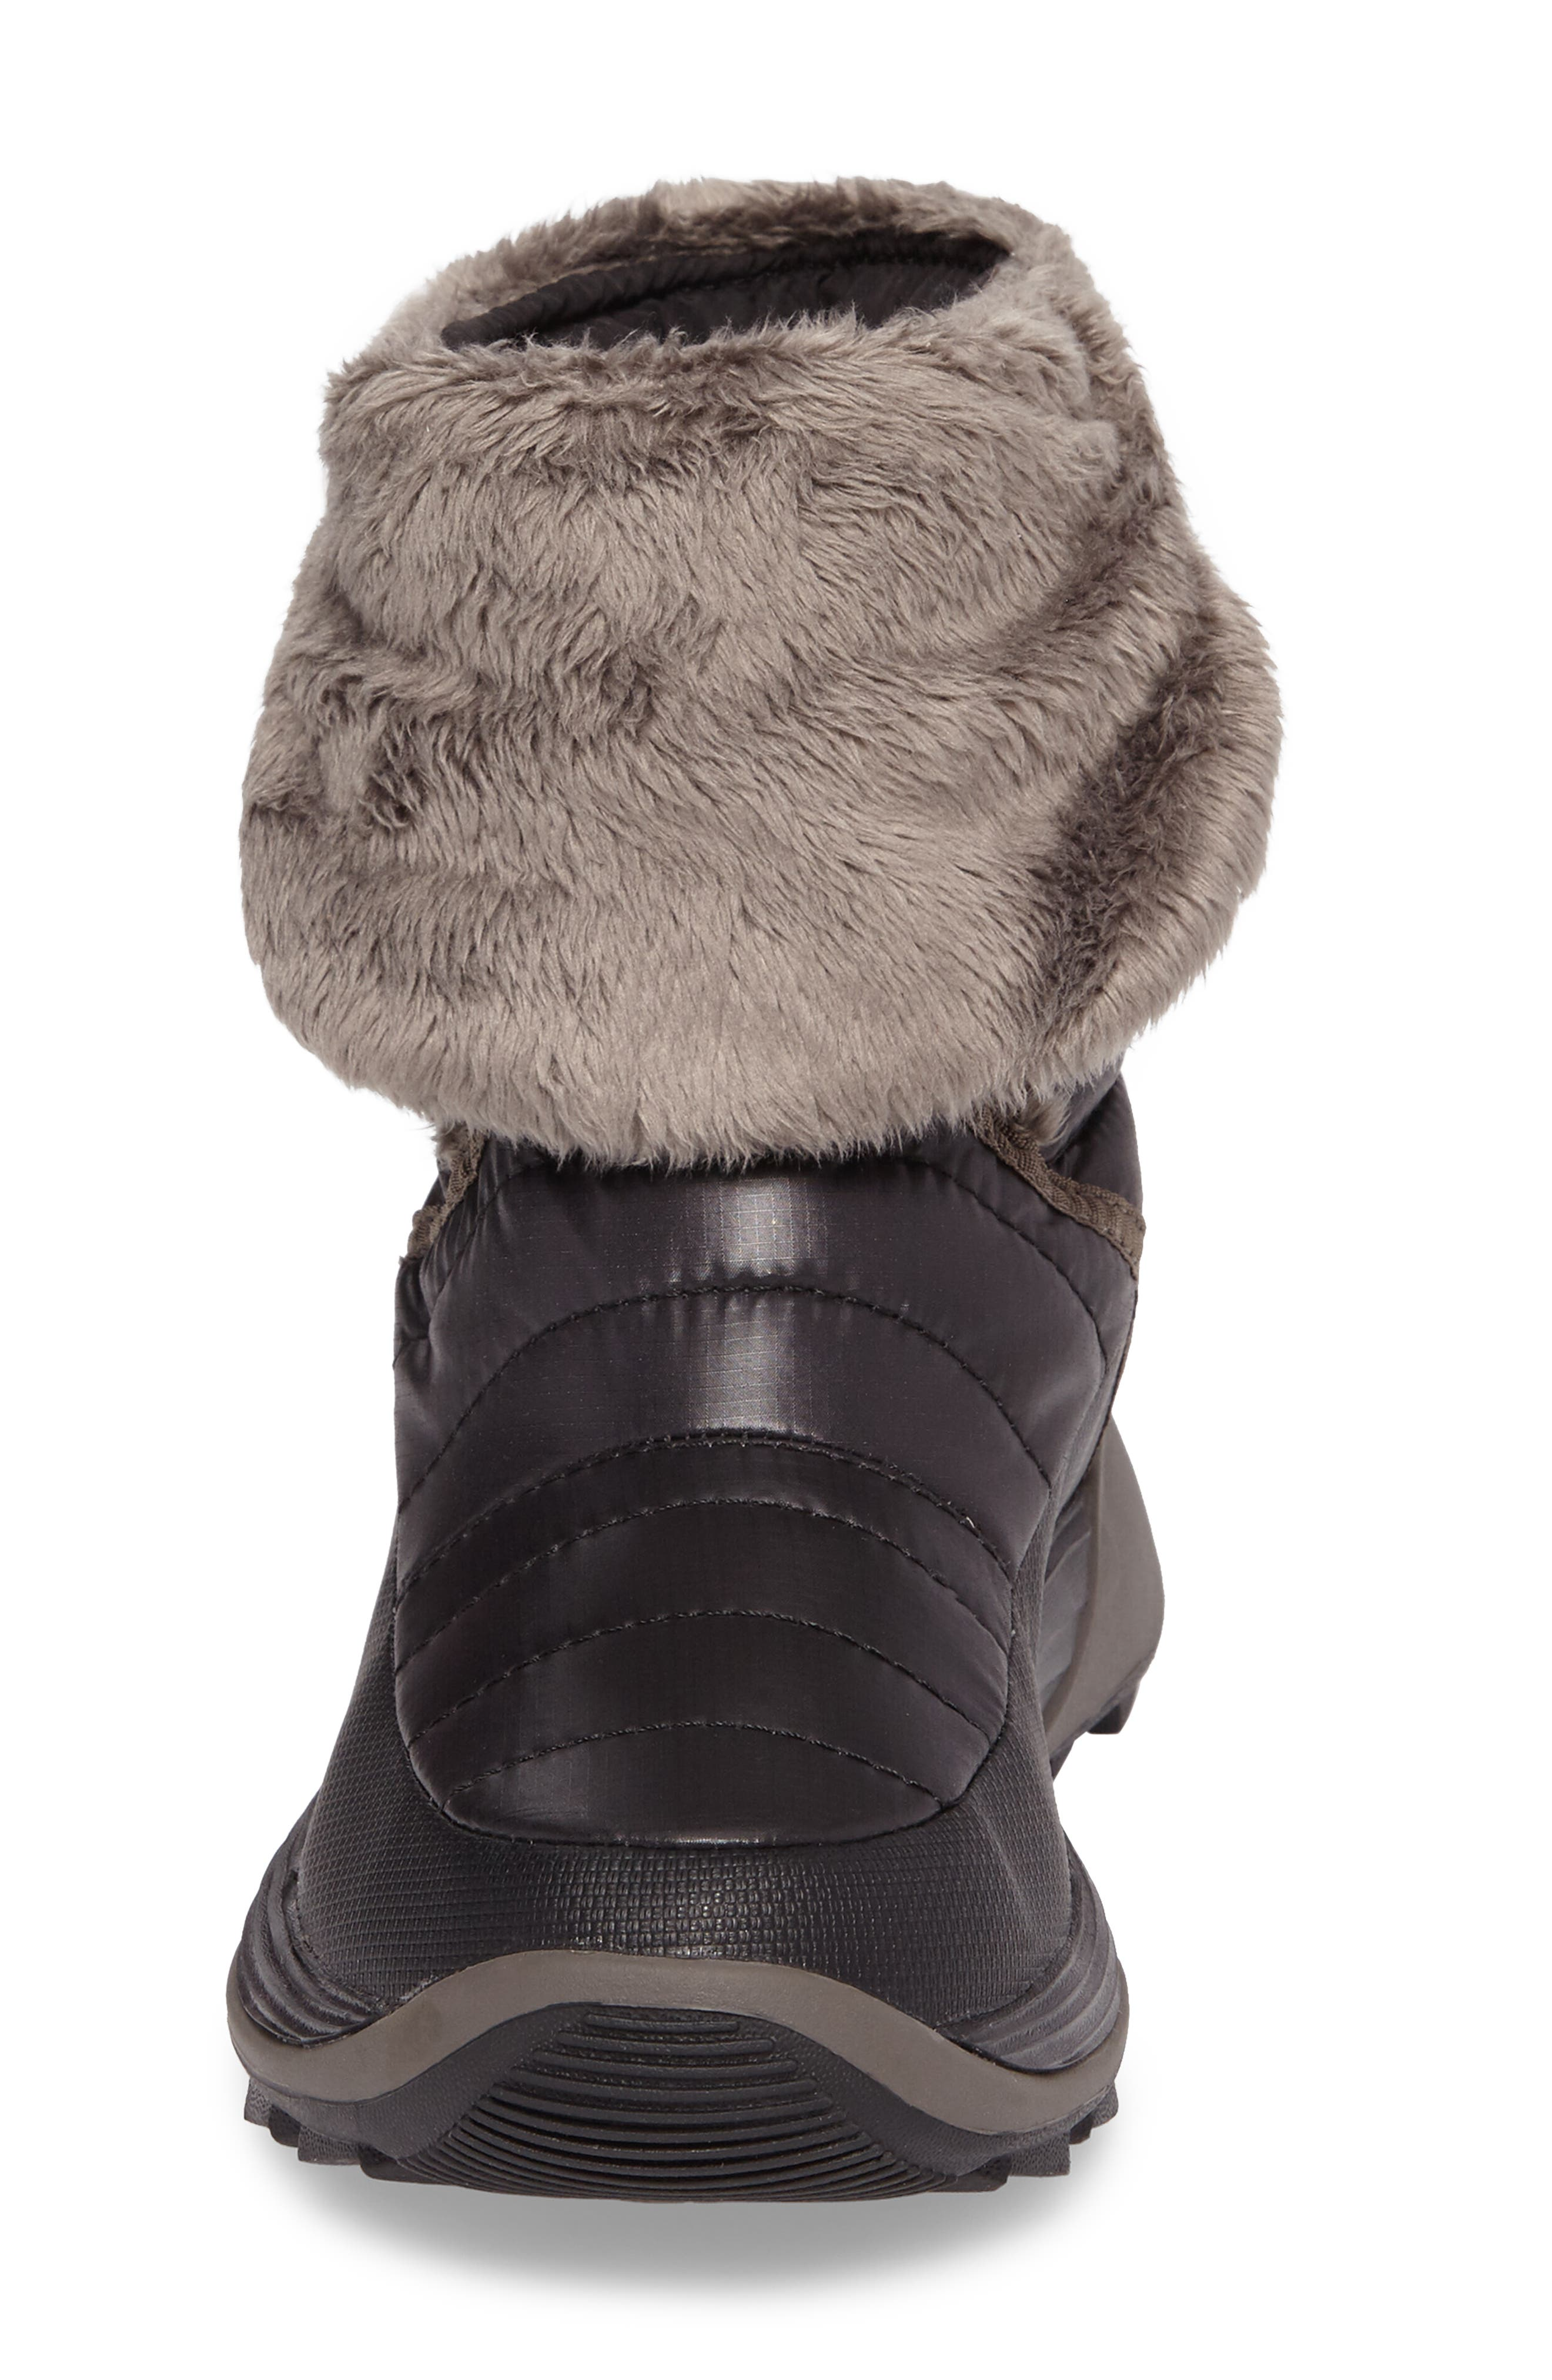 THE NORTH FACE, Amore II Water-Resistant Winter Boot, Alternate thumbnail 4, color, TNF BLACK/ DARK GULL GREY